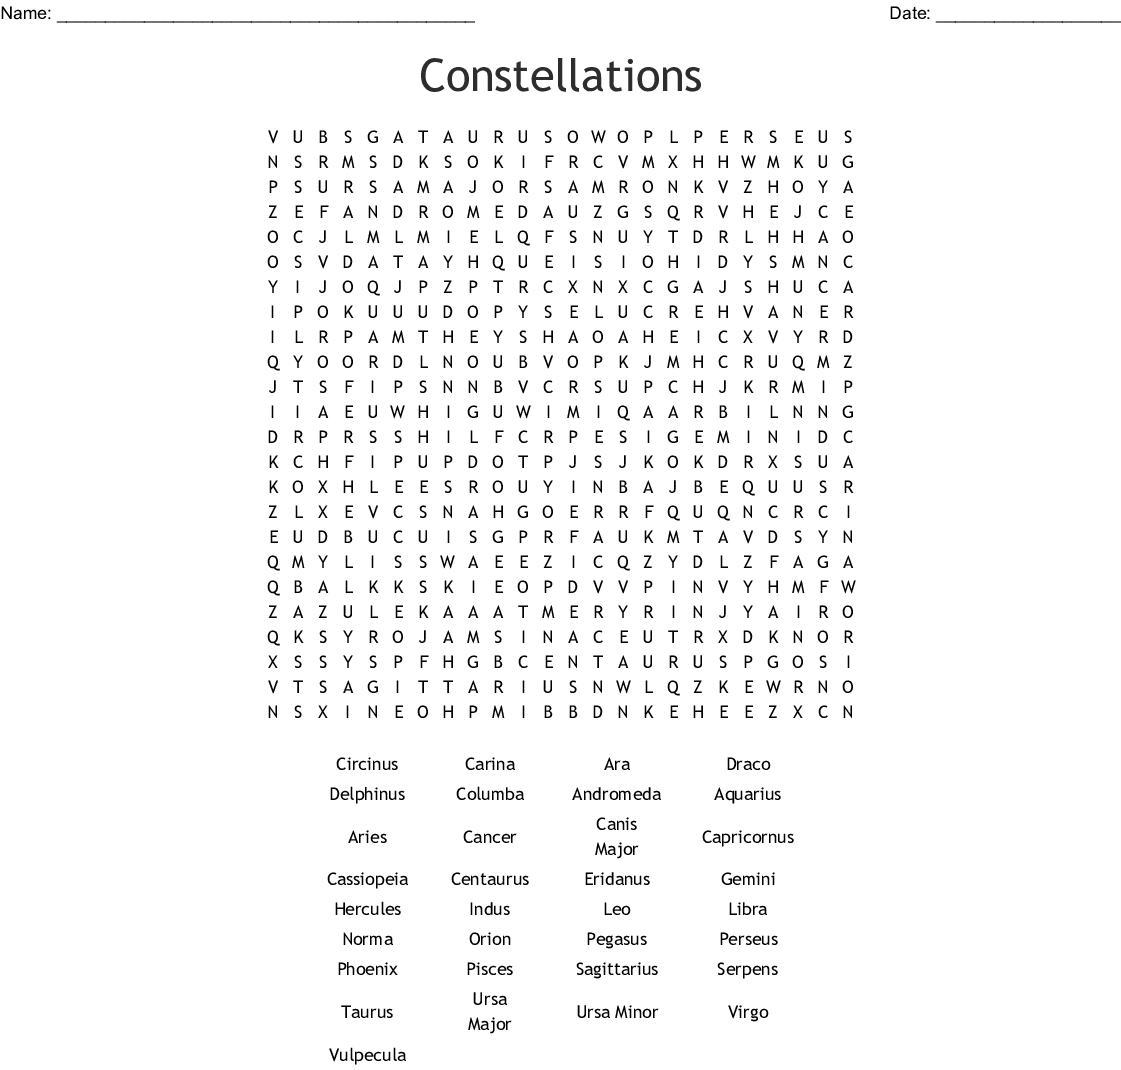 Constellations Word Search